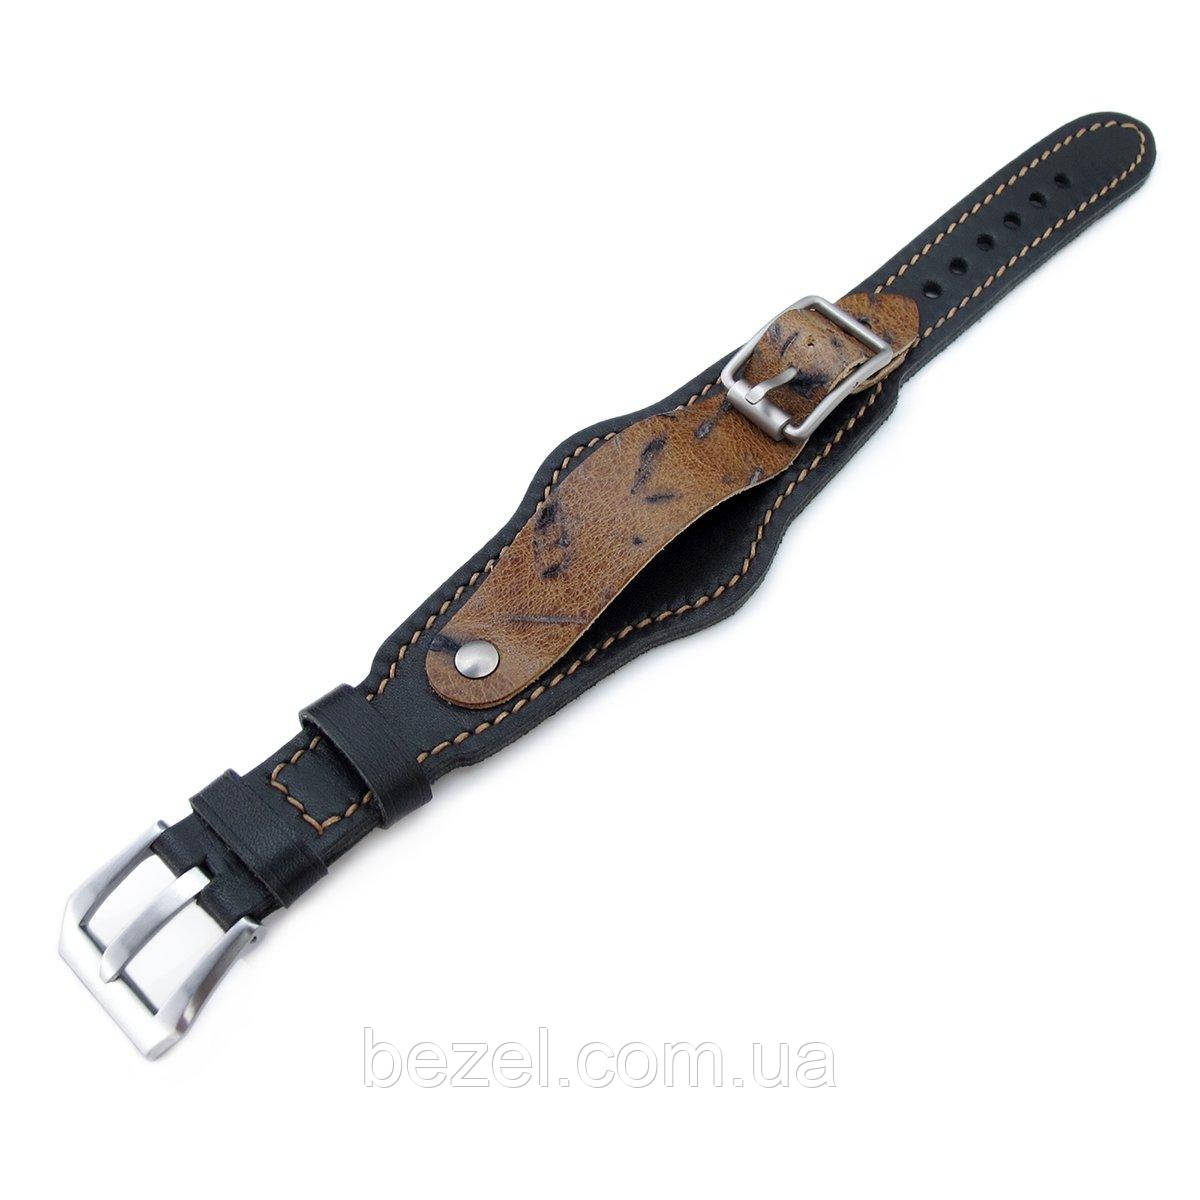 20mm Hezzo Bund Military Style Double-layer Watch Strap, Black Italian Leather